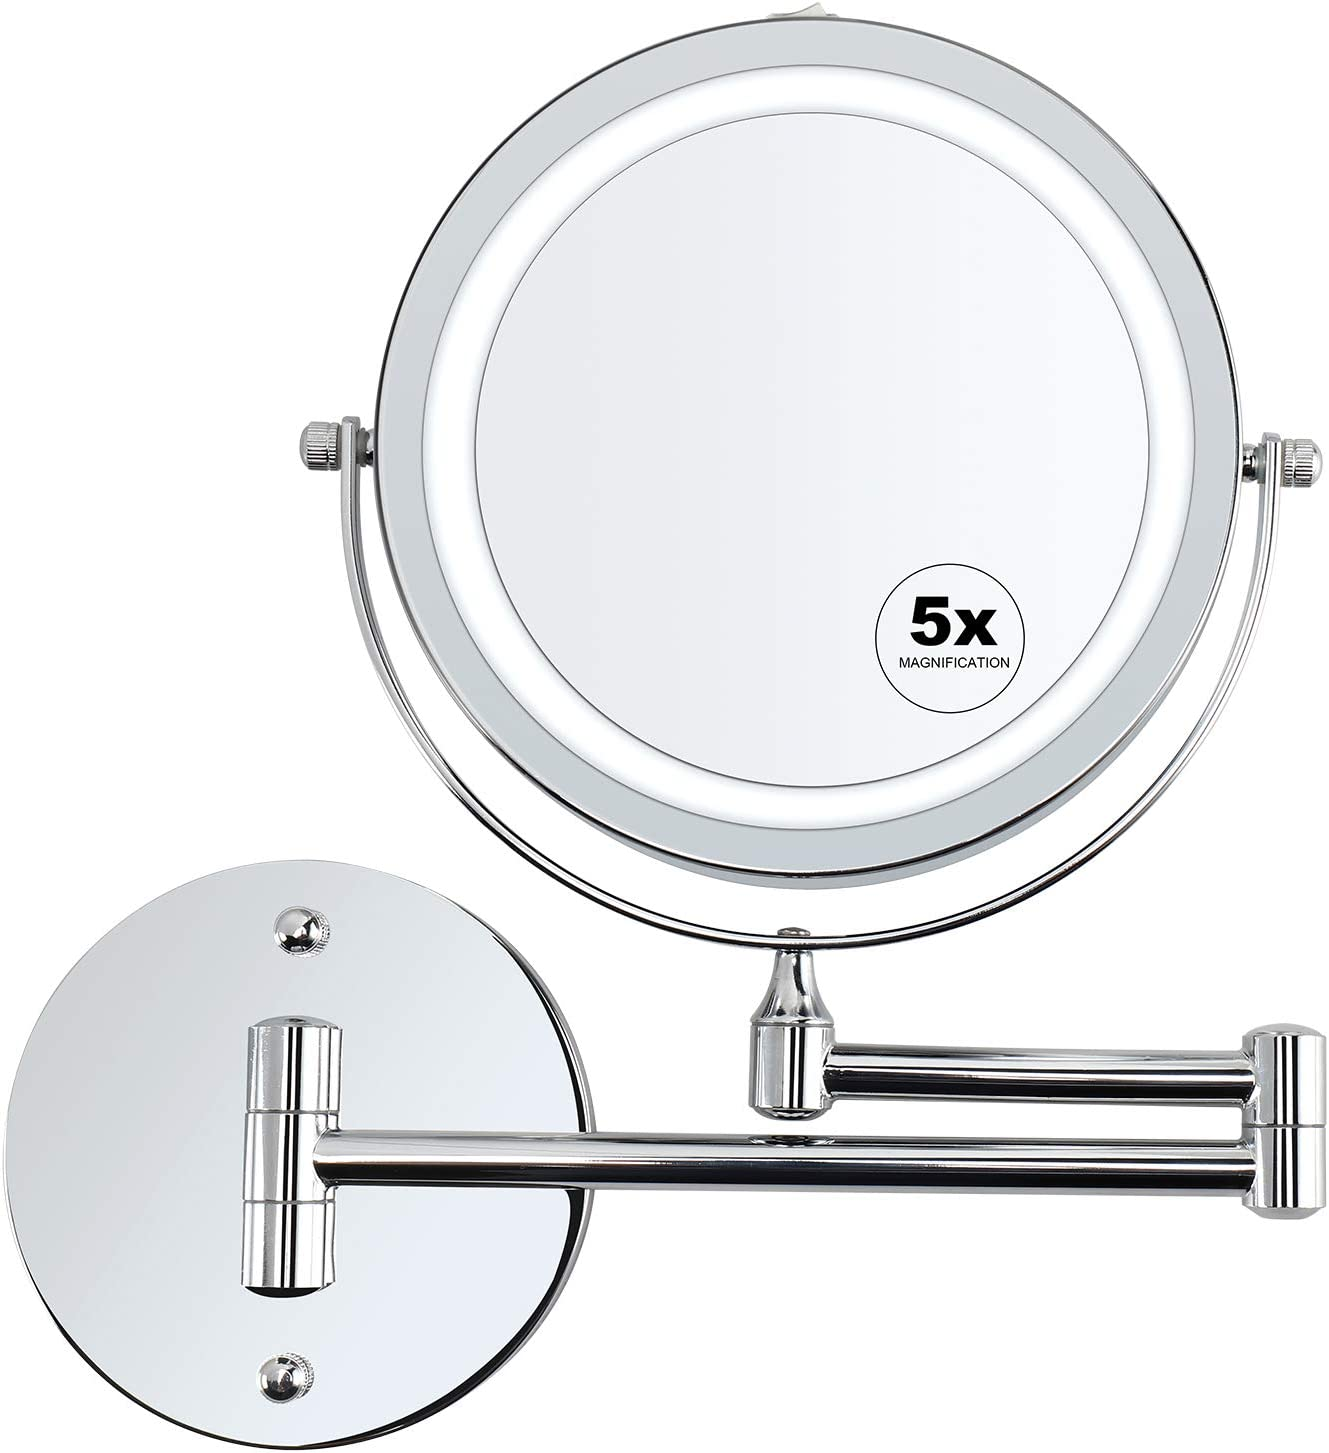 Amazon Com Alvorog Wall Mounted Makeup Mirror Led Lighted 5x Magnifying Cosmetic Mirror 360 Swivel Extendable Two Sided Vanity Mirror For Bathroom Powered By 4 X Aaa Batteries Not Included Home Kitchen